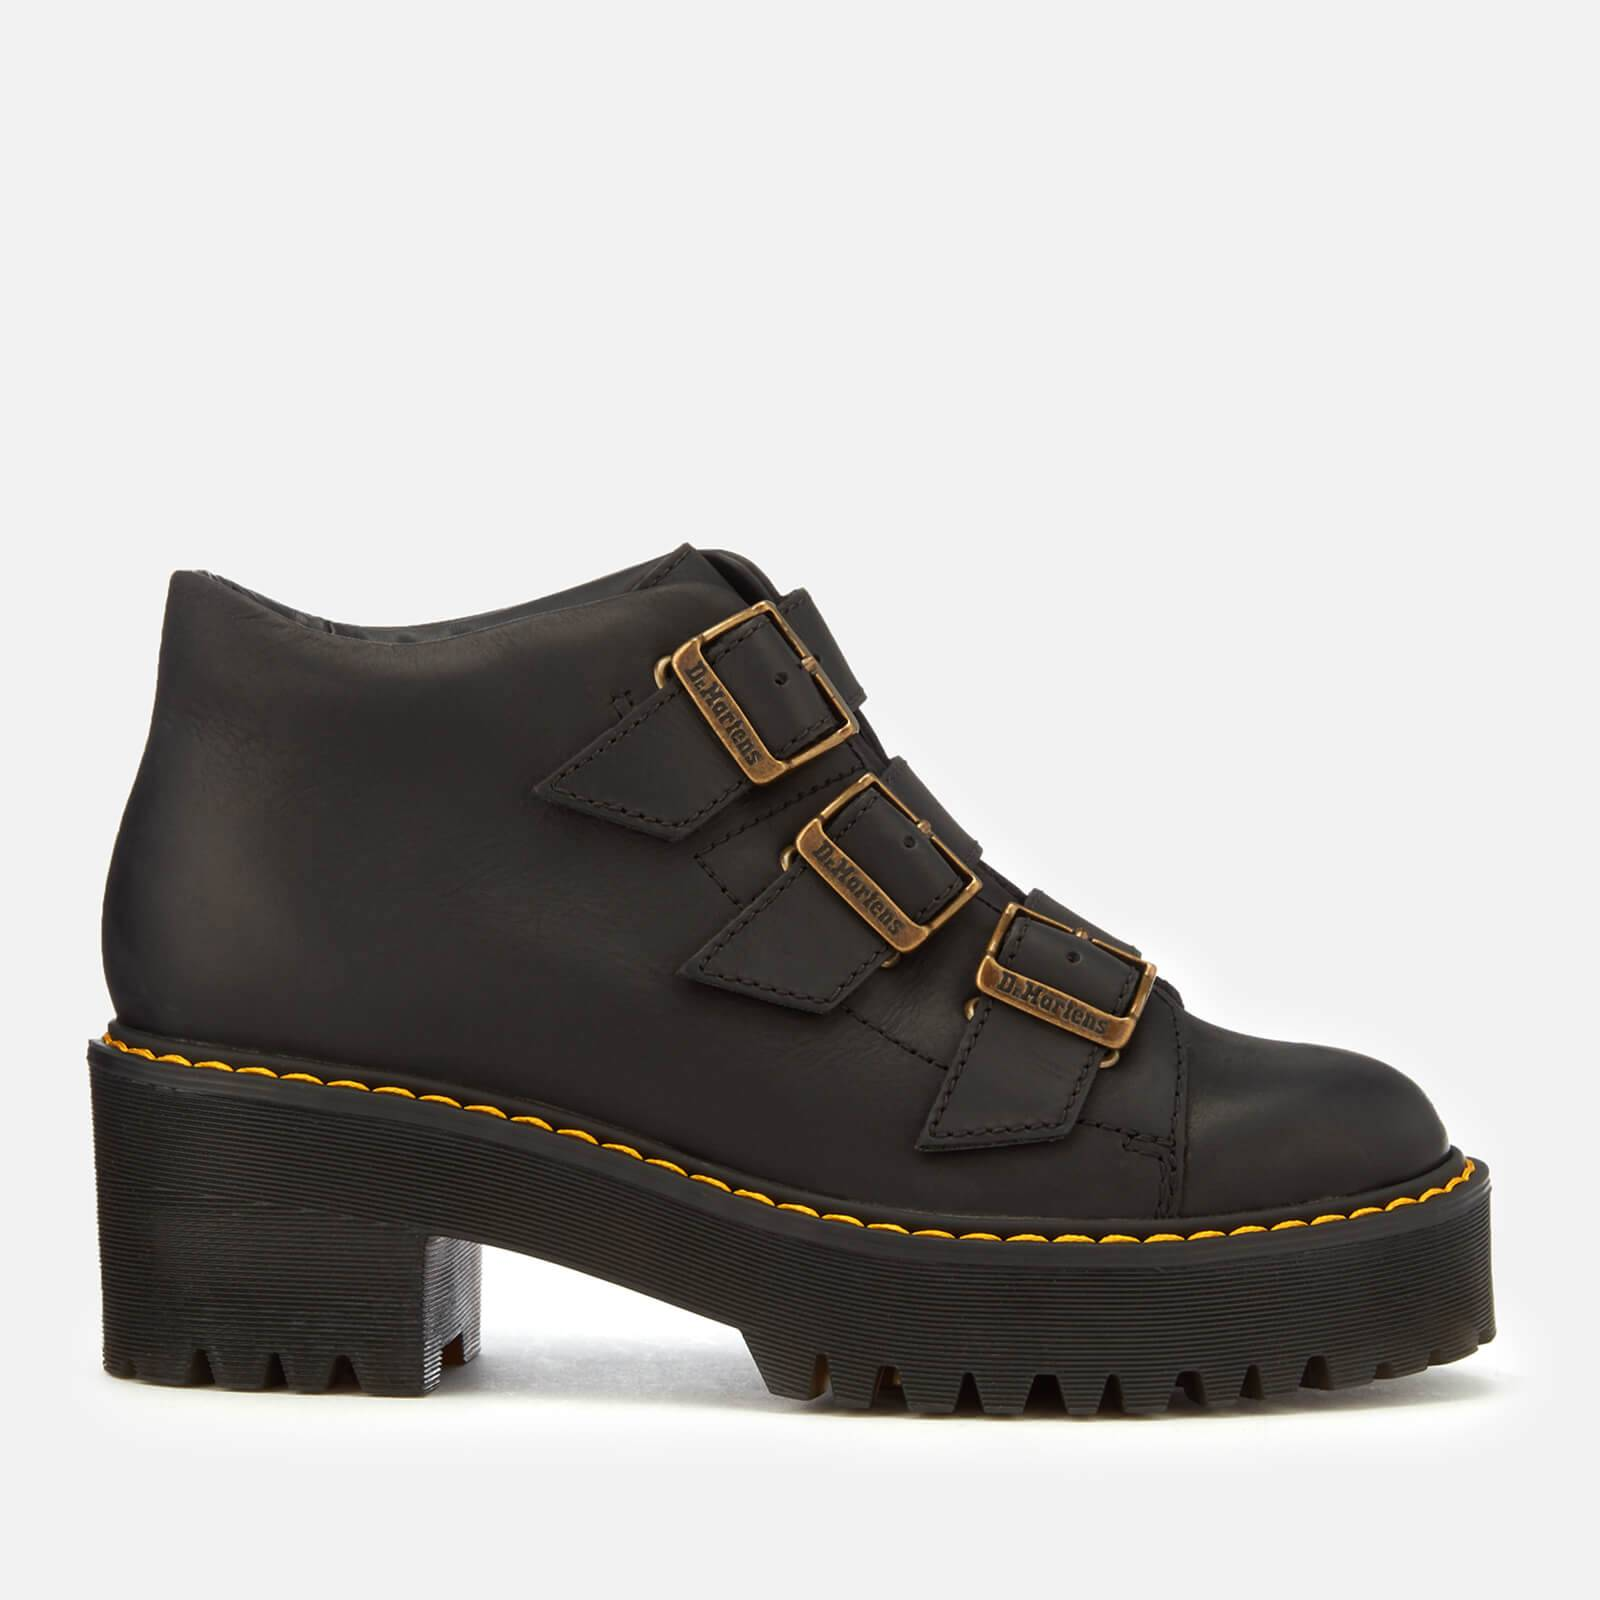 Dr. Martens Women's Coppola Leather Buckle Heeled Boots - Black - UK 4 - Black